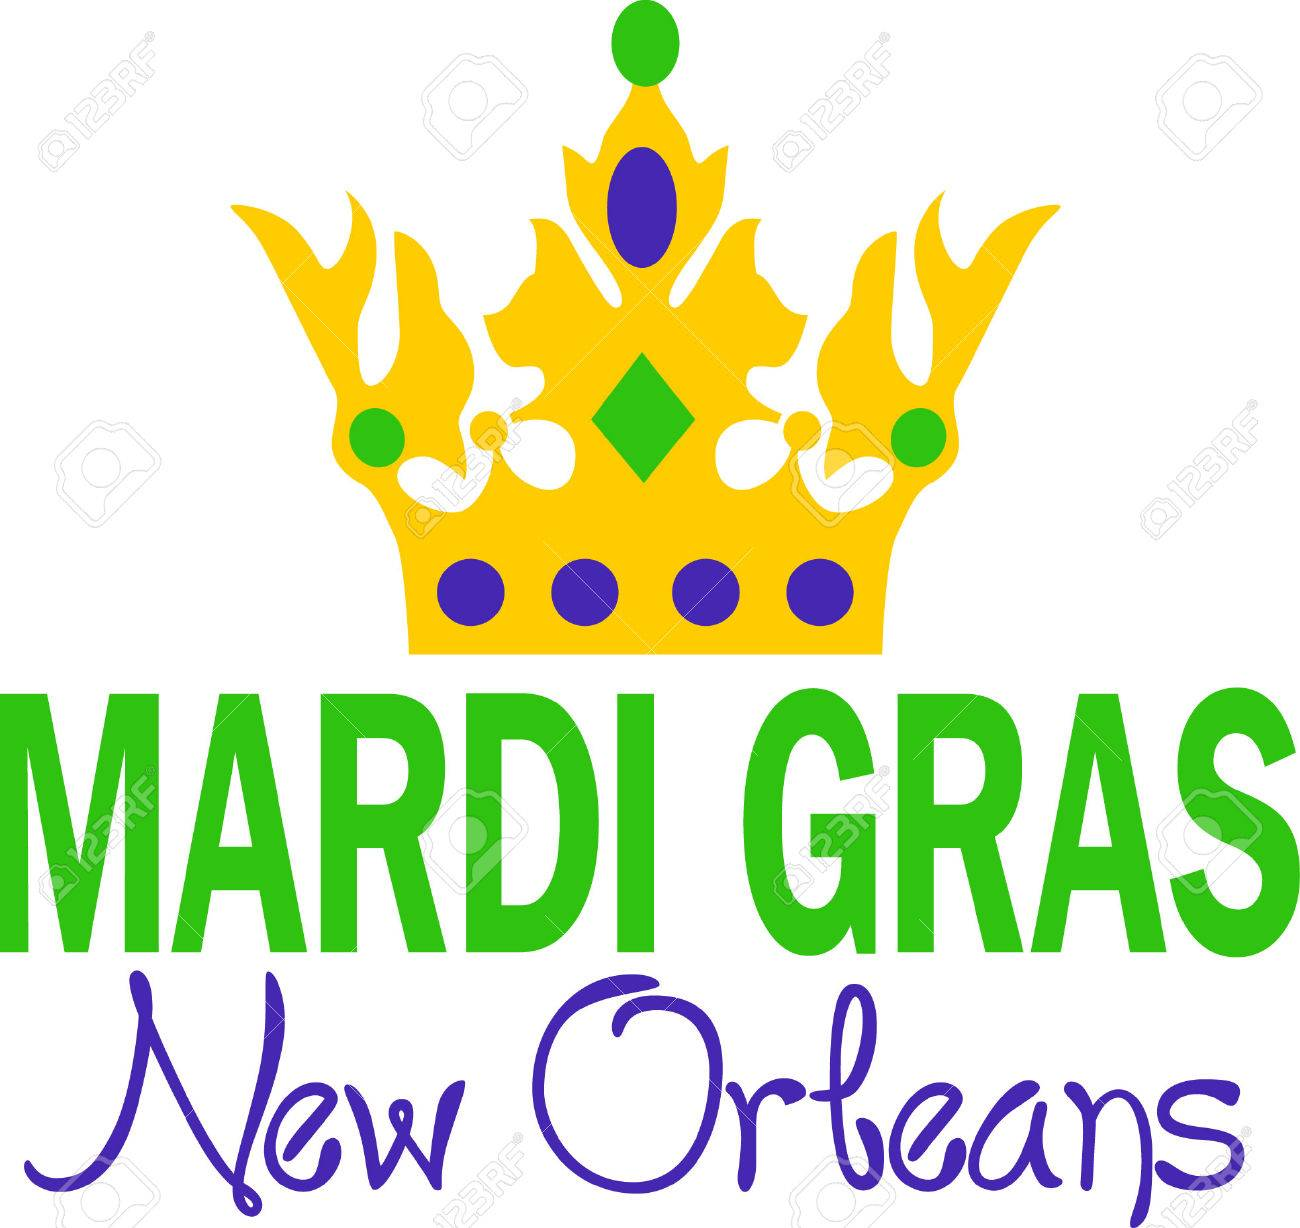 Get Ready For The Mardi Gras Parties With This Fantastic Crown Grab These Designs From